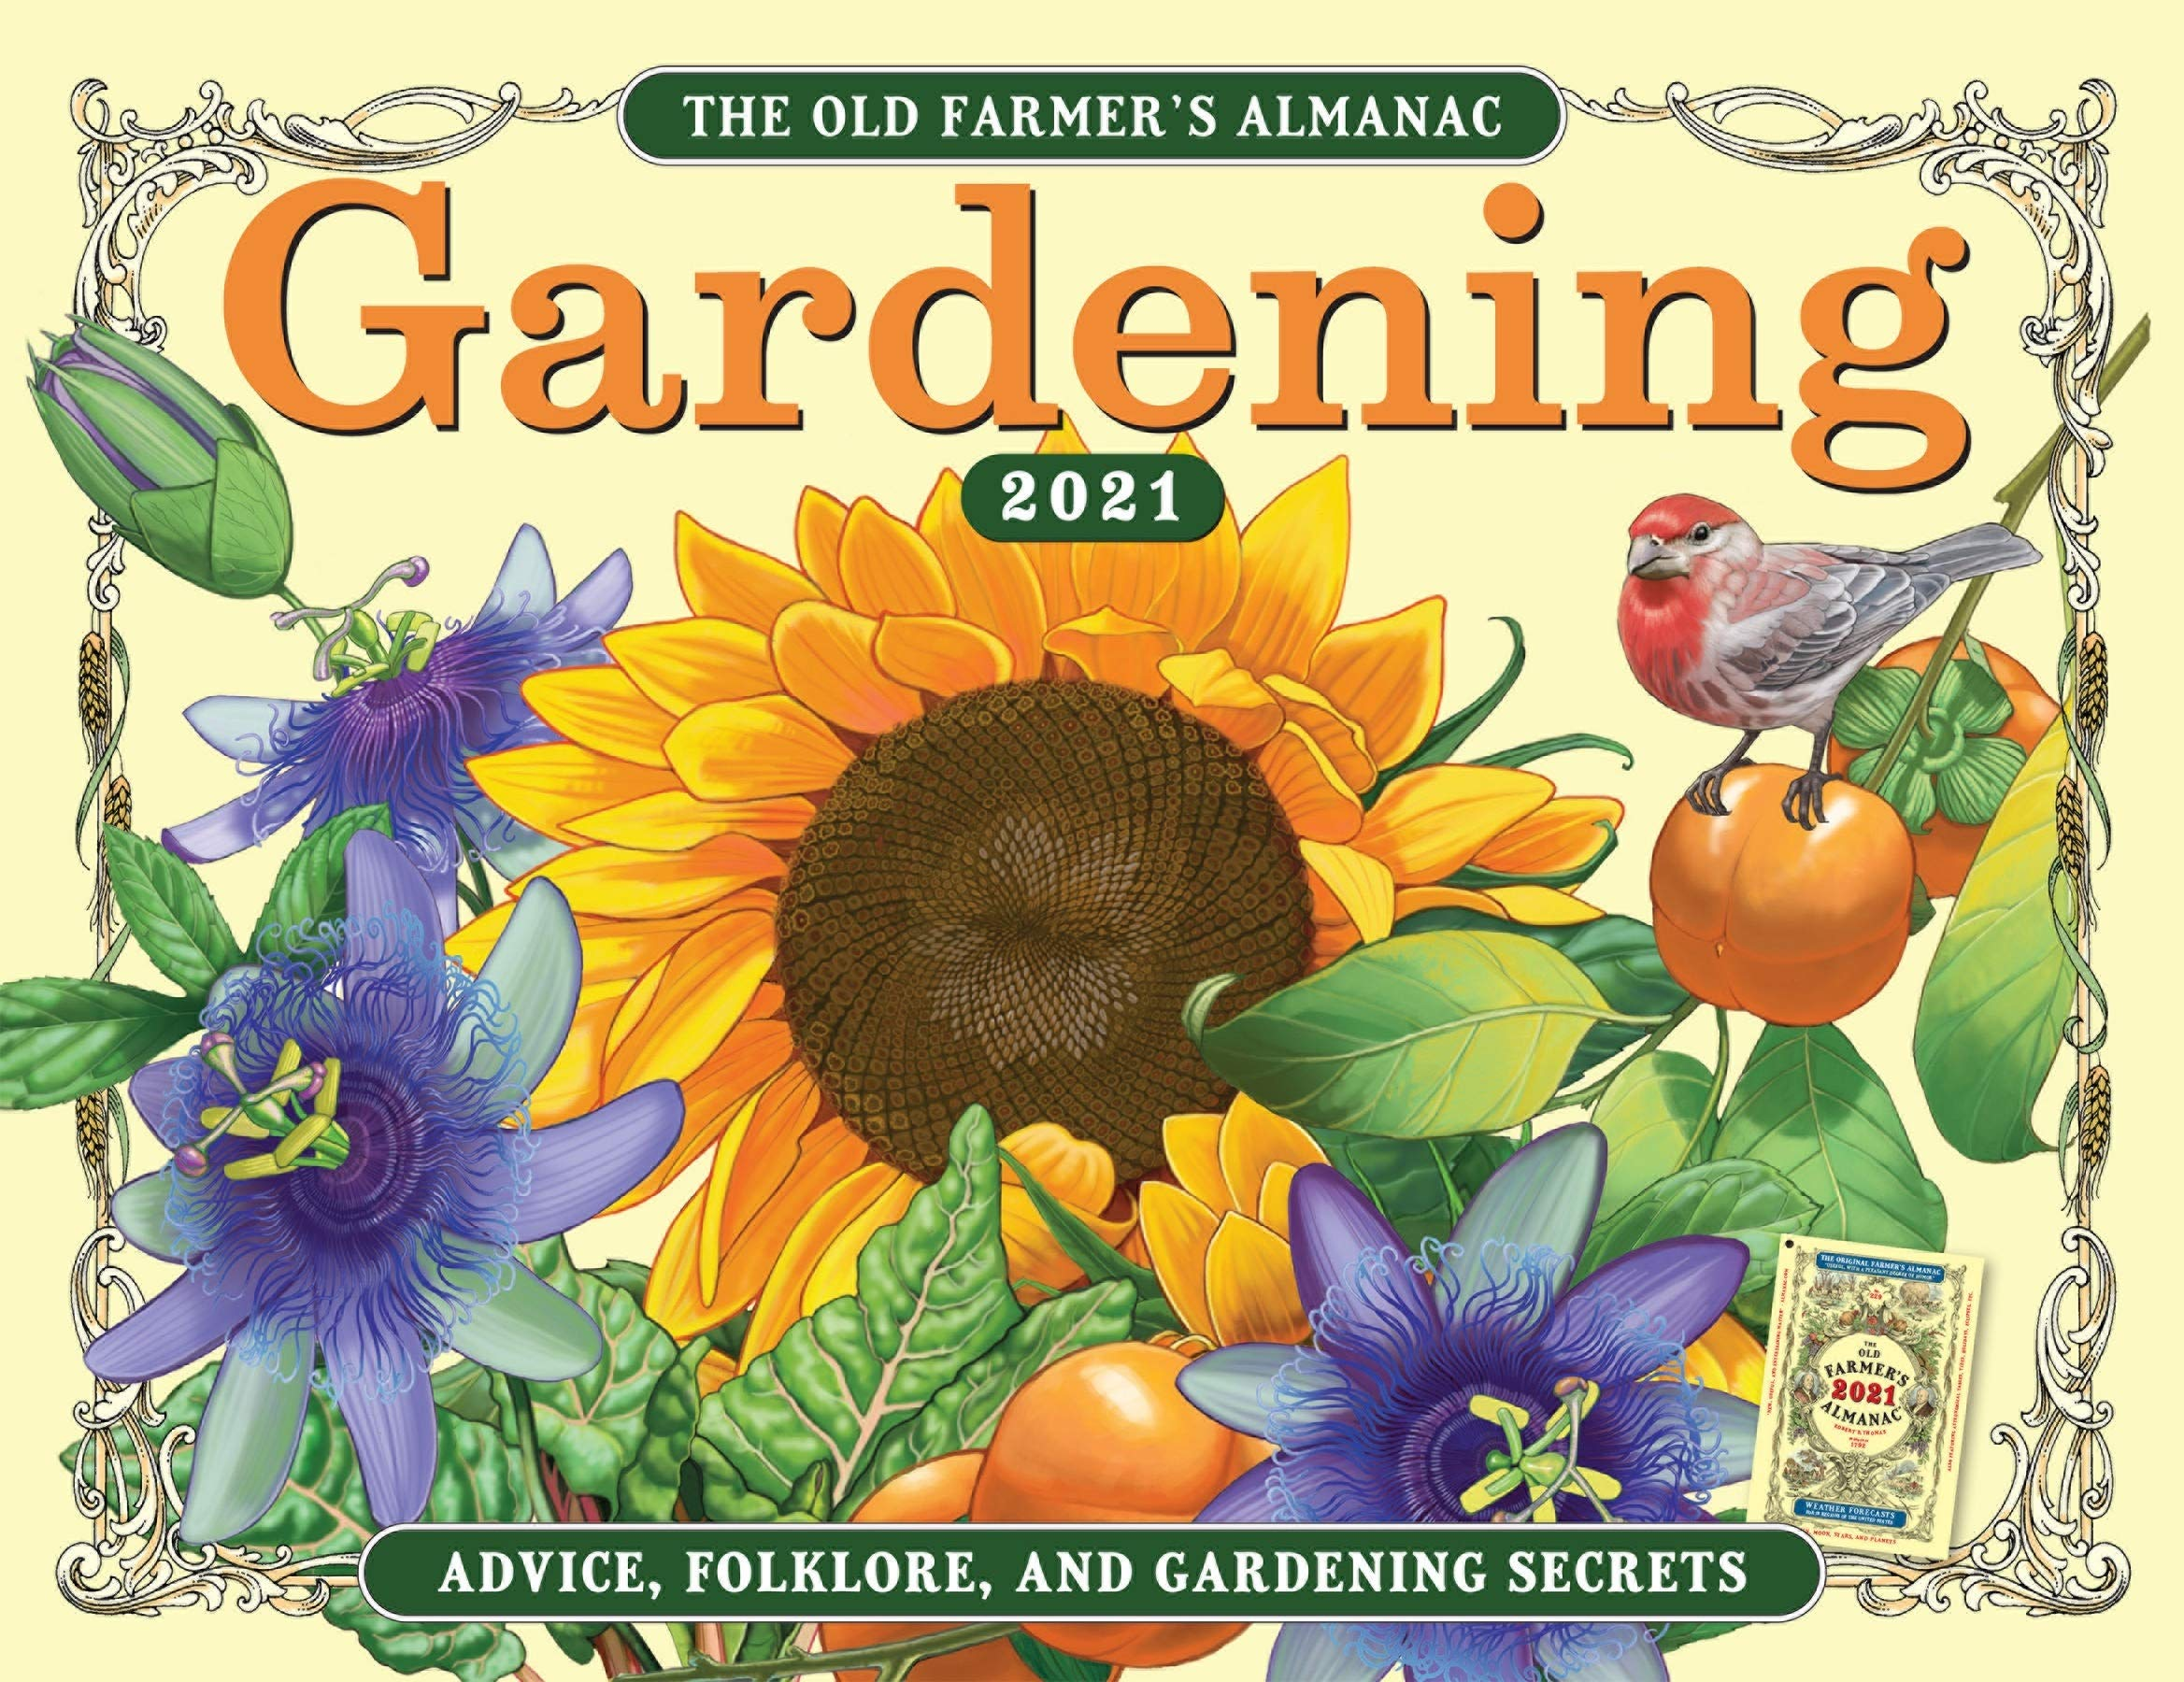 Farmers Almanac Calendar 2021 The 2021 Old Farmer's Almanac Gardening Calendar: Old Farmer's